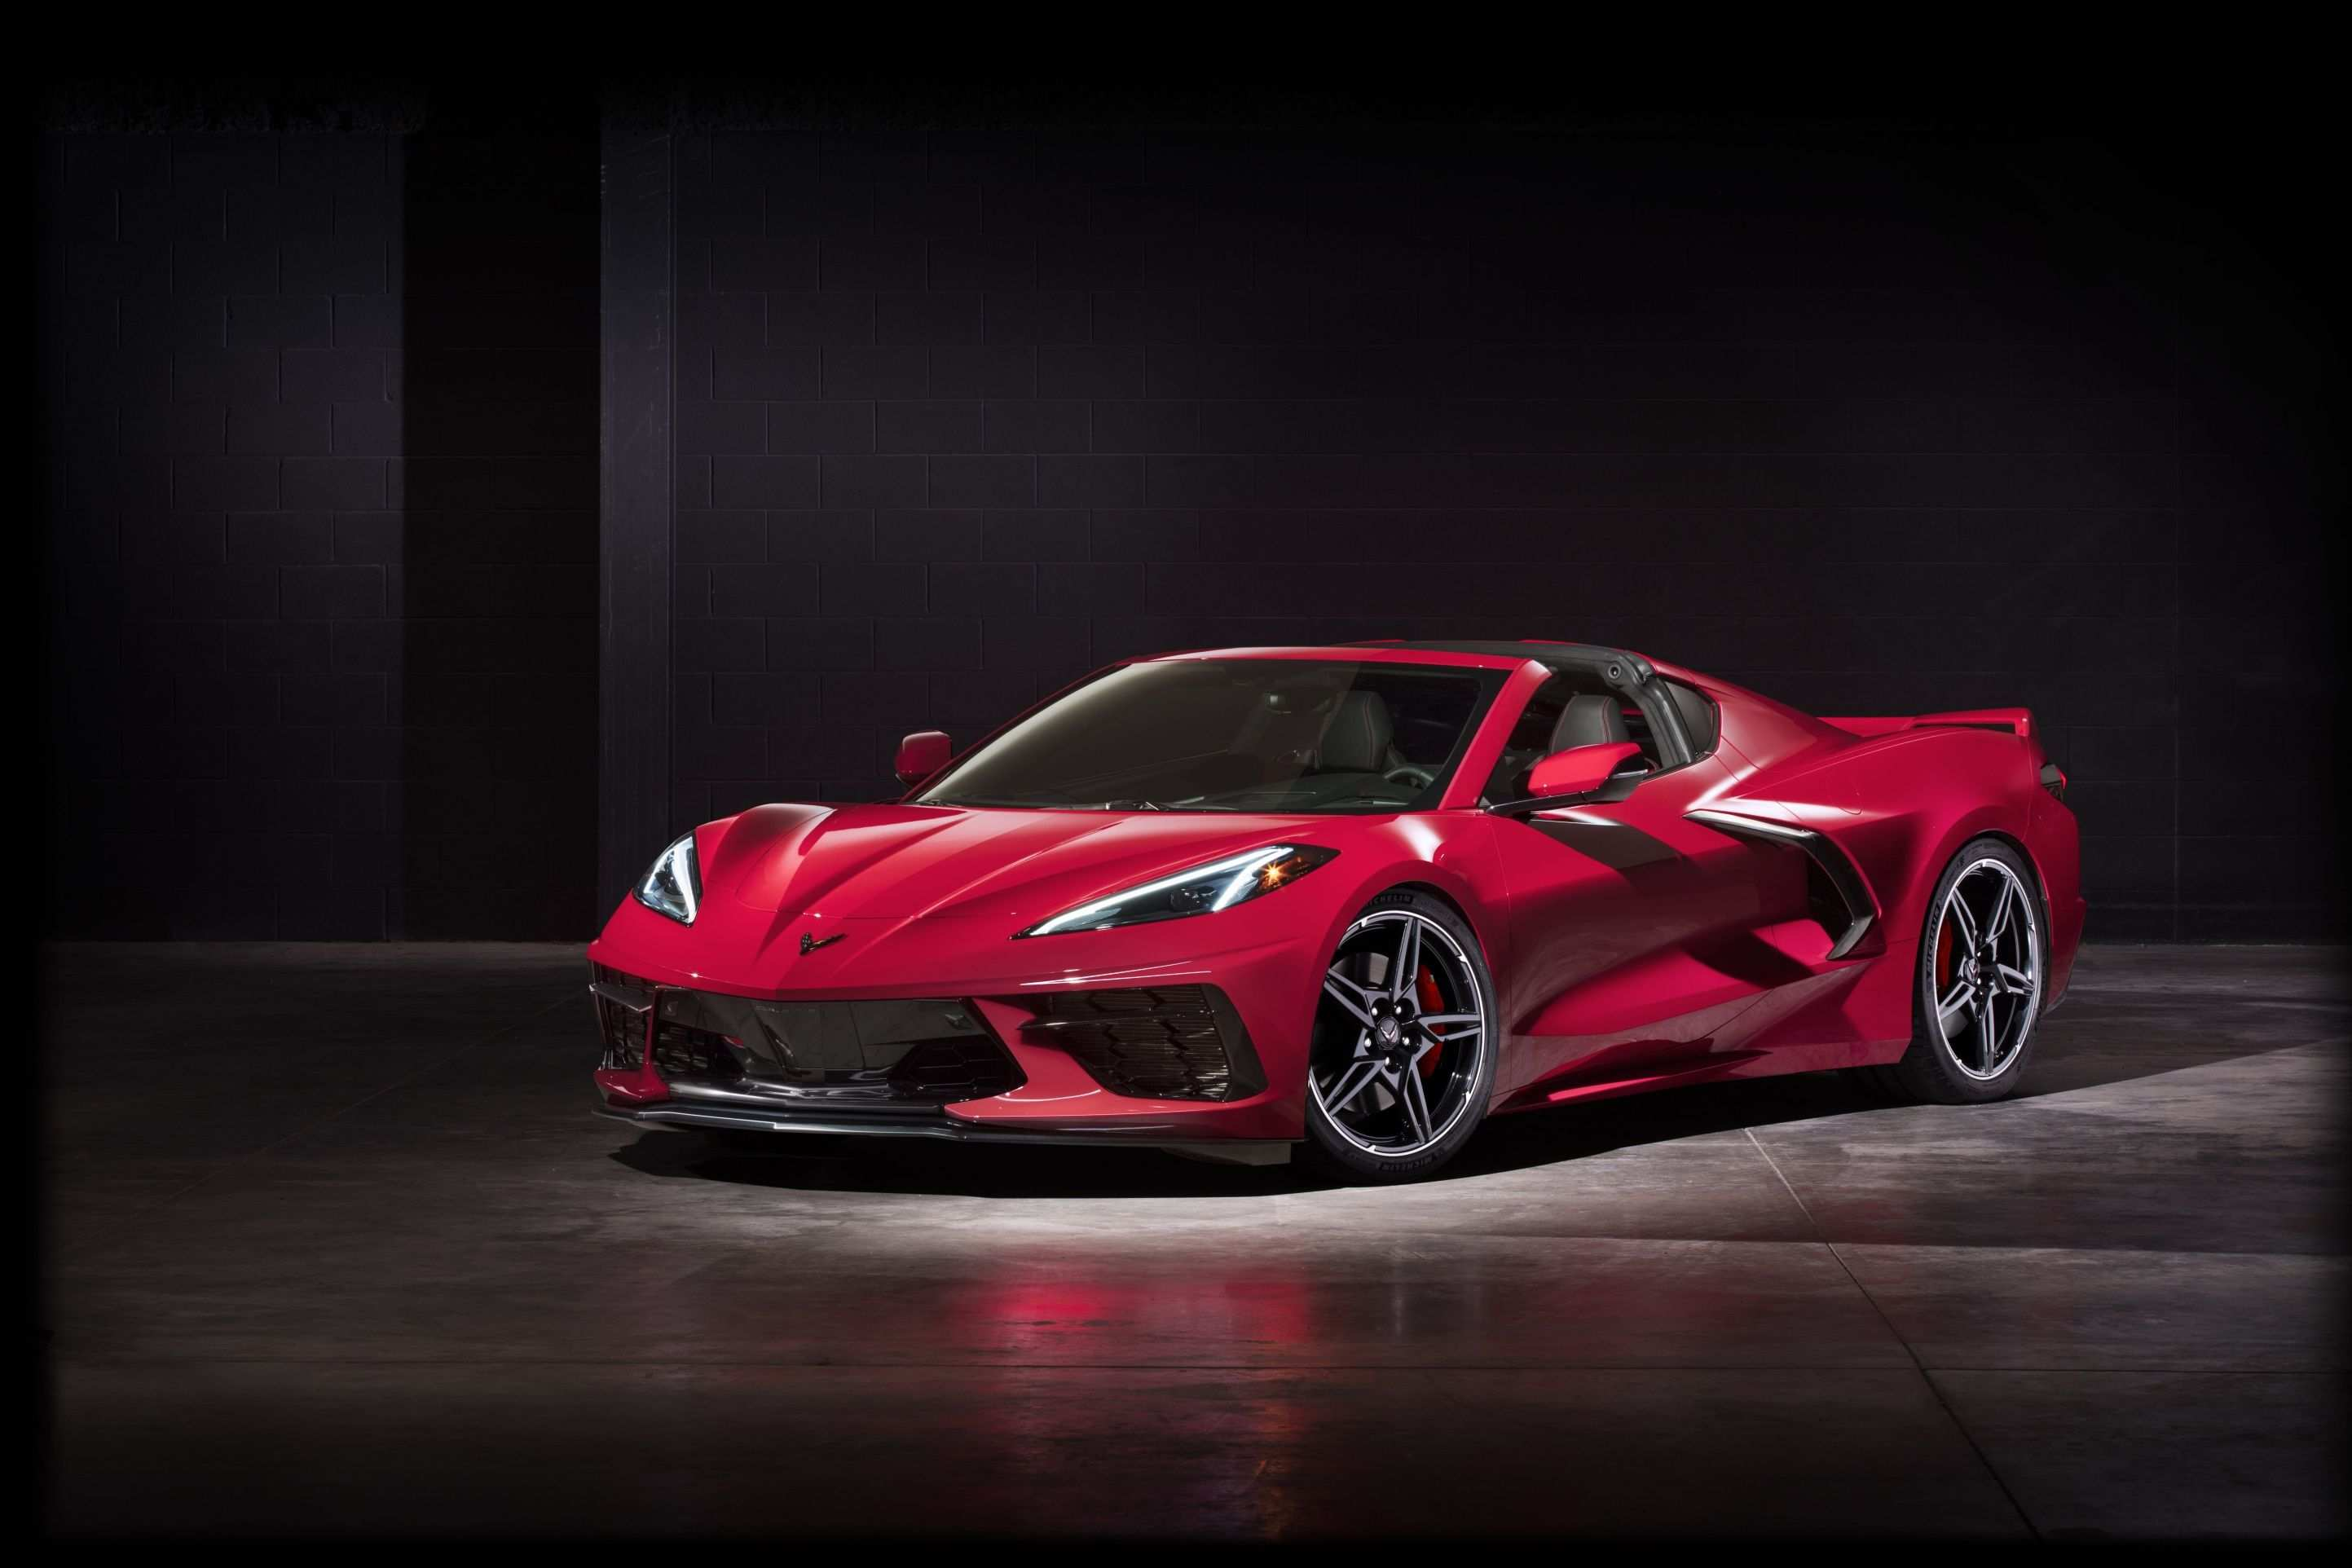 57 Concept of 2020 Chevrolet Corvette Mid Engine C8 Wallpaper for 2020 Chevrolet Corvette Mid Engine C8